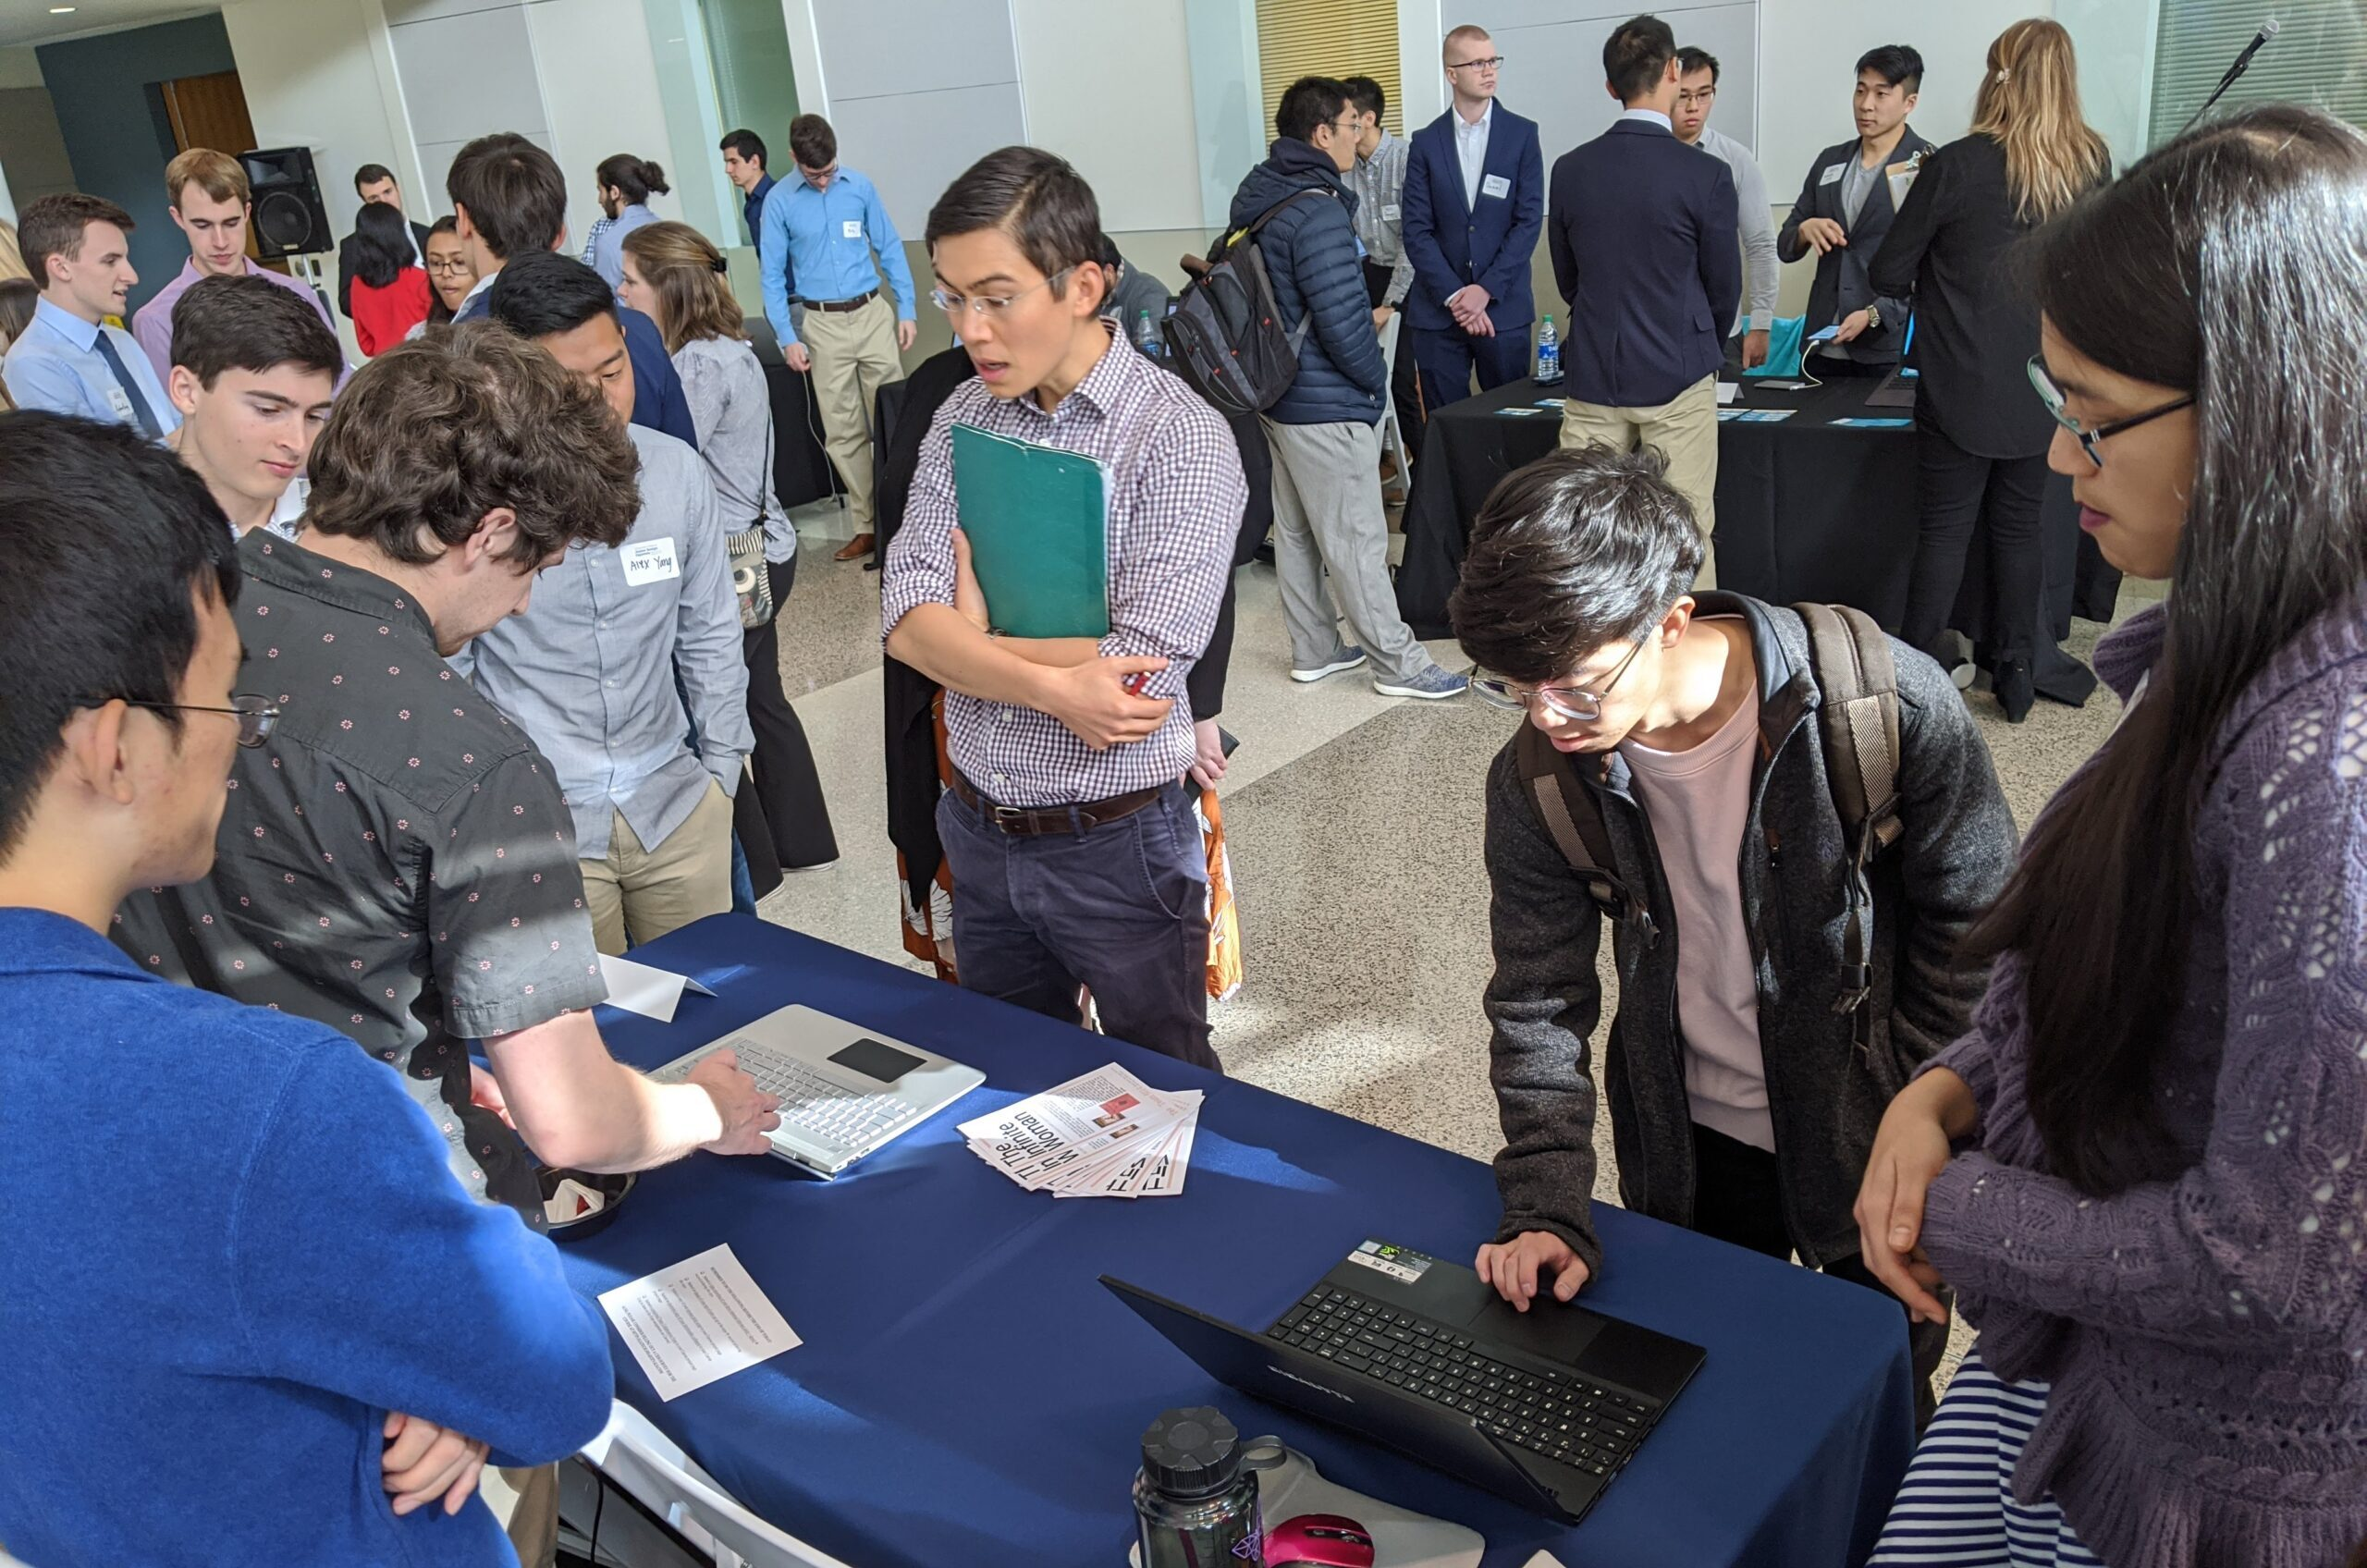 The team presents their project at Georgia Tech's Junior Design Capstone Expo in December 2019. Visitors interact with laptops displaying the project, while team members discuss with them.